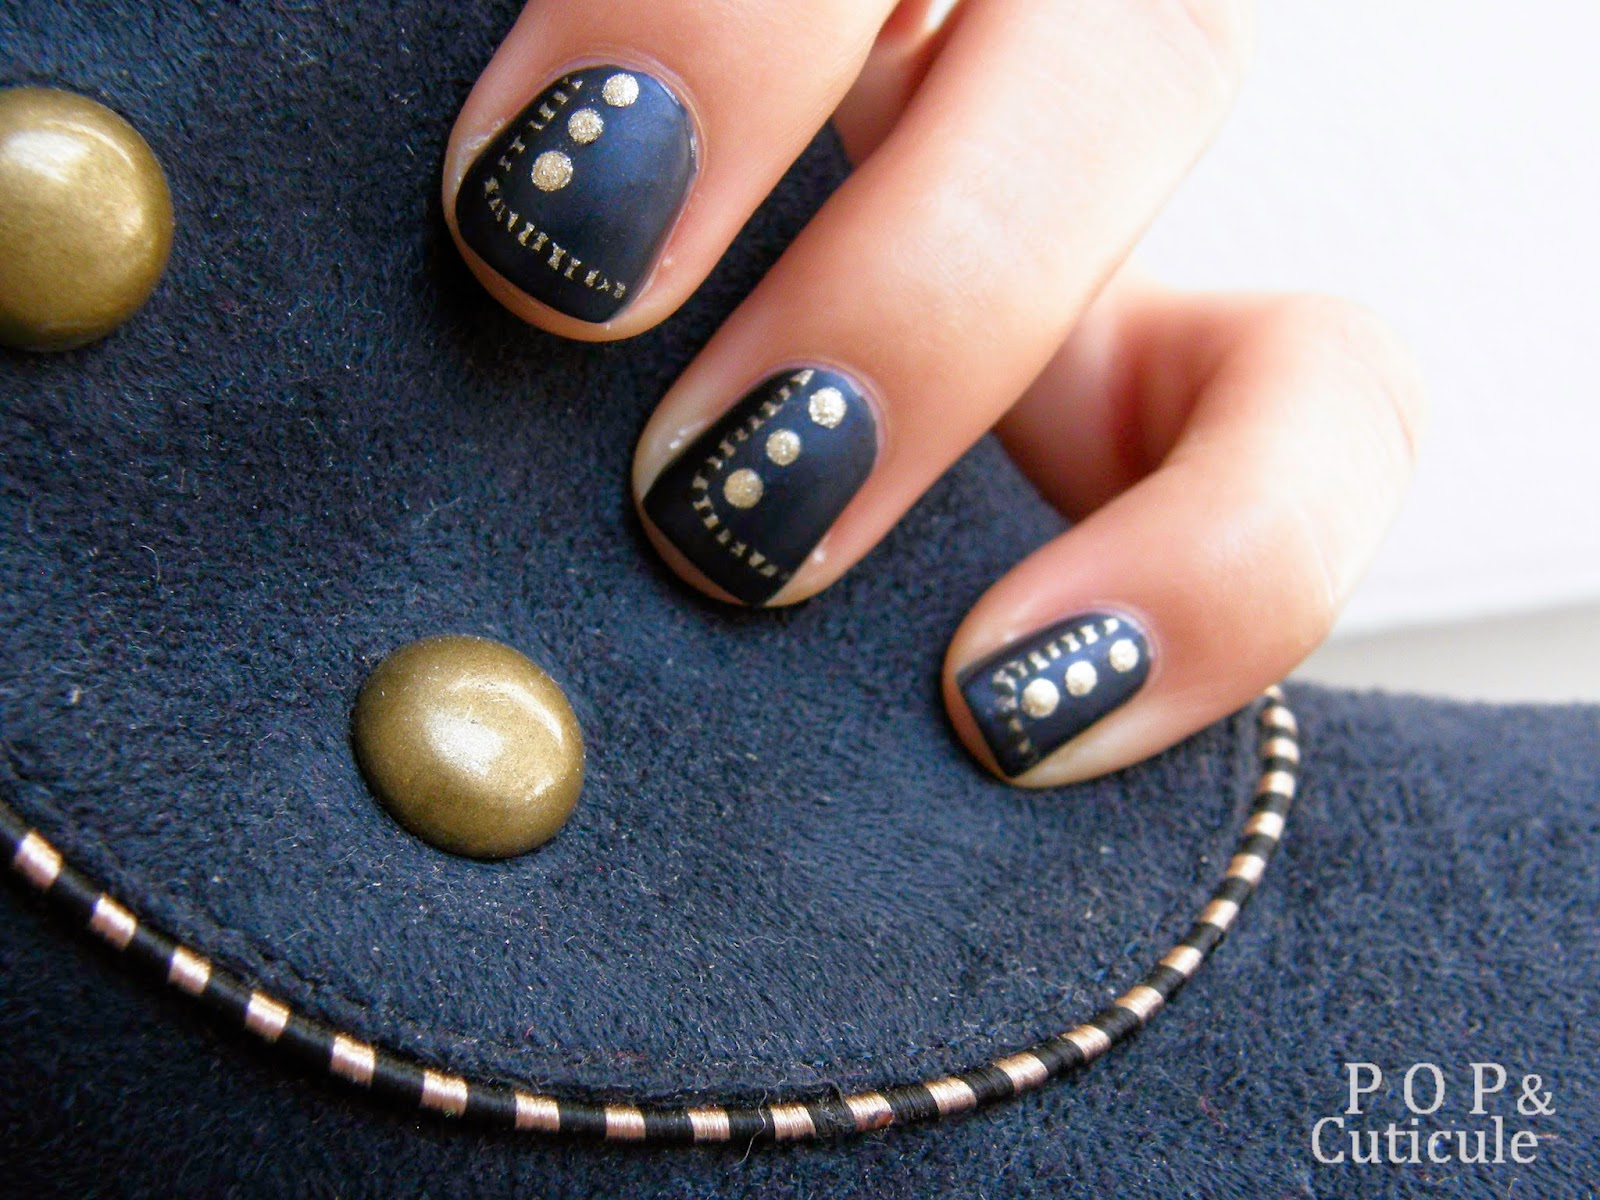 Pop & Cuticule nail art gold bleu marine or